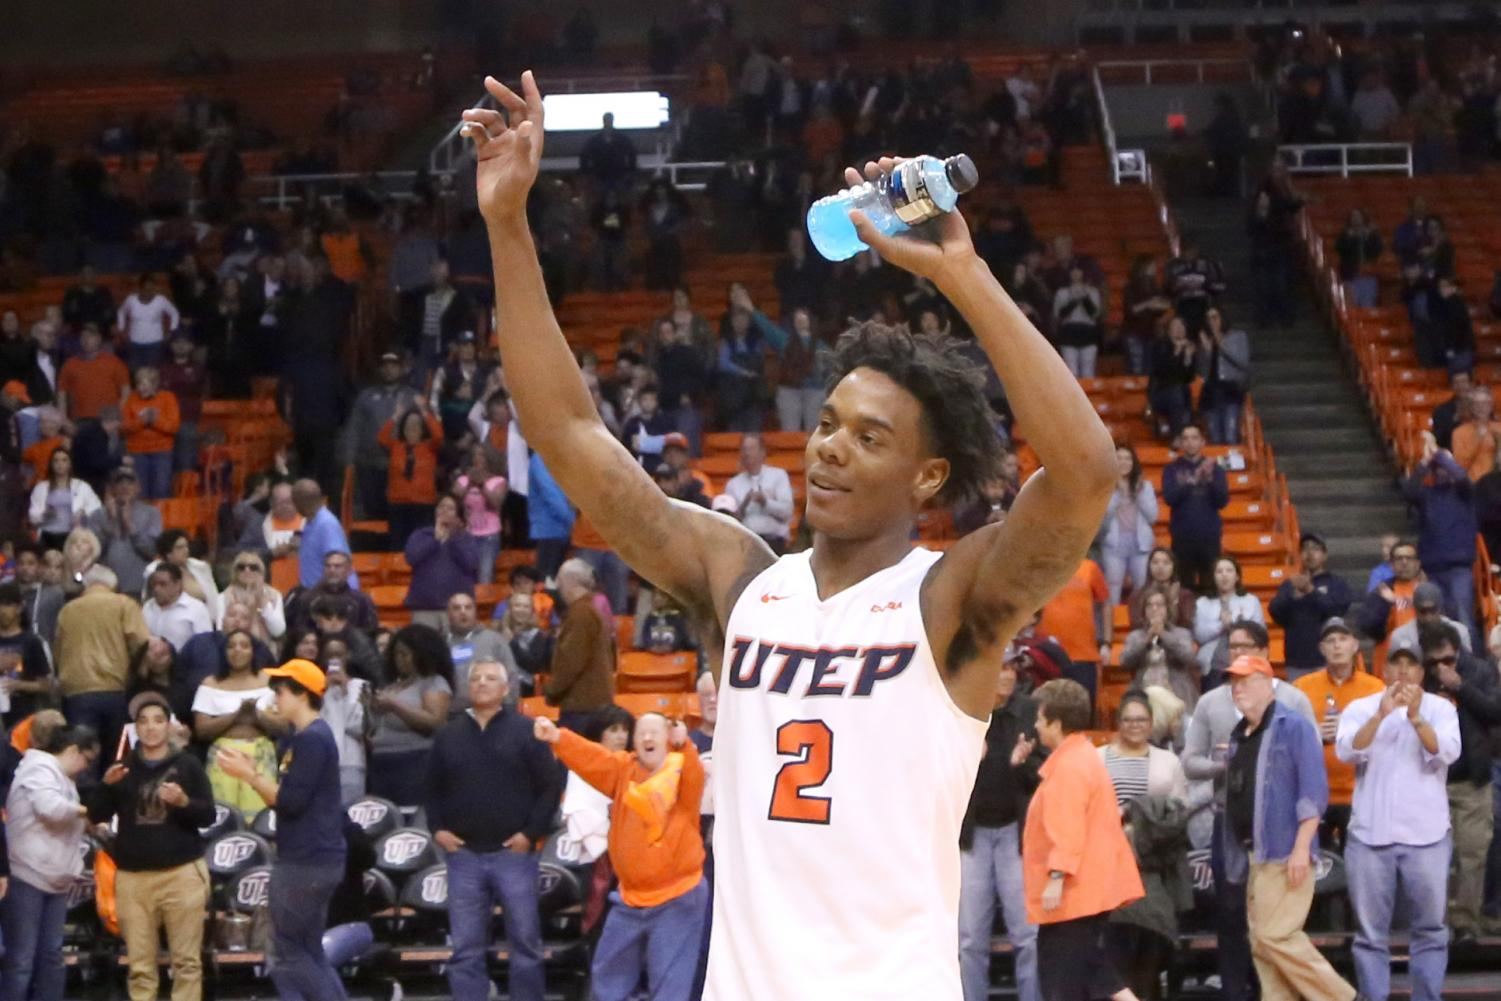 Senior+guard+Omega+Harris+takes+in+the+post+game+ovation+from+the+UTEP+faithful+center+court.+